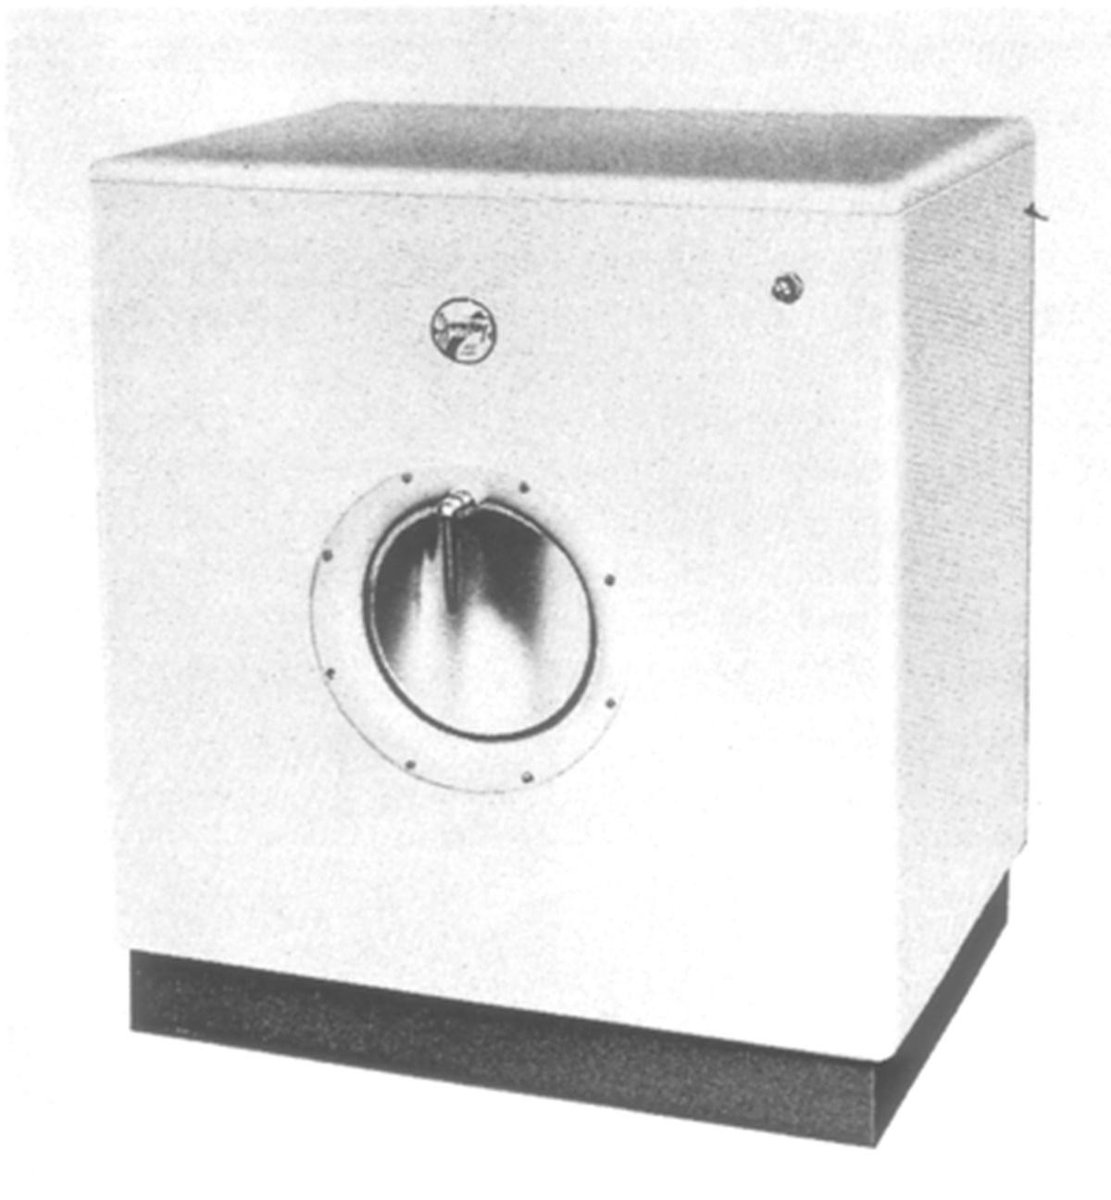 Black History Heroes On Twitter When Doing Laundry Remember Inventor George T Sampson Rcv D U S Patent For Automatic Clothes Dryer 6 7 1892